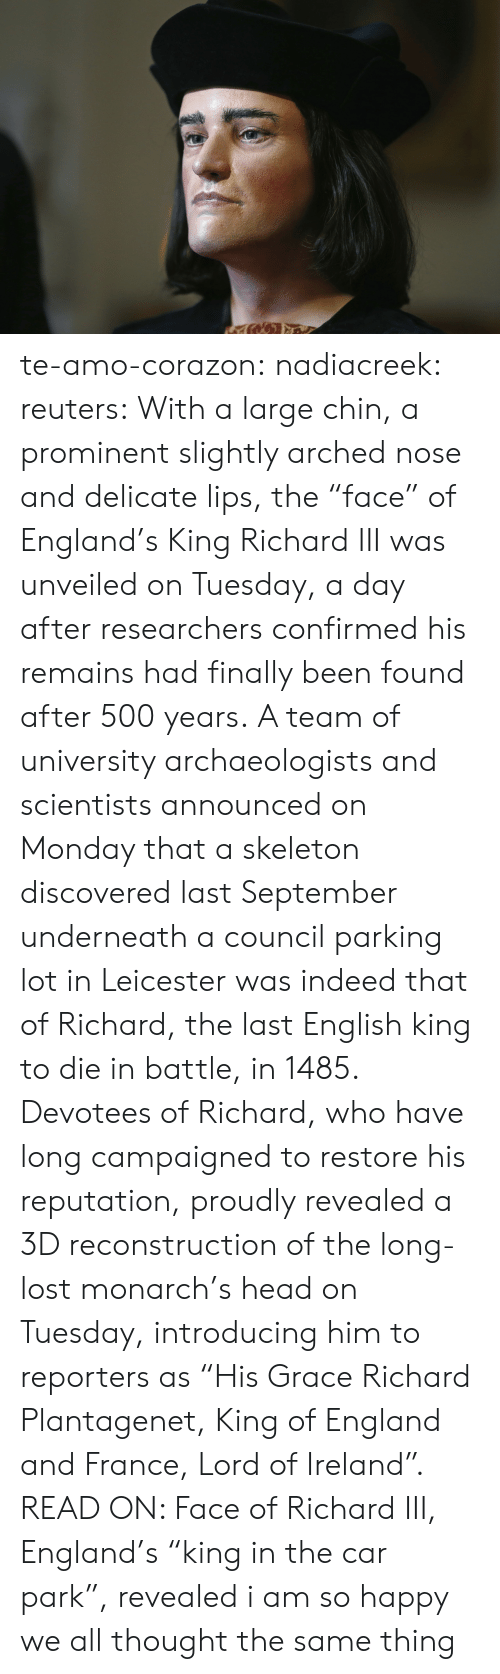 """Britain: te-amo-corazon: nadiacreek:  reuters:  With a large chin, a prominent slightly arched nose and delicate lips, the """"face"""" of England's King Richard III was unveiled on Tuesday, a day after researchers confirmed his remains had finally been found after 500 years. A team of university archaeologists and scientists announced on Monday that a skeleton discovered last September underneath a council parking lot in Leicester was indeed that of Richard, the last English king to die in battle, in 1485. Devotees of Richard, who have long campaigned to restore his reputation, proudly revealed a 3D reconstruction of the long-lost monarch's head on Tuesday, introducing him to reporters as """"His Grace Richard Plantagenet, King of England and France, Lord of Ireland"""". READ ON: Face of Richard III, England's """"king in the car park"""", revealed     i am so happy we all thought the same thing"""